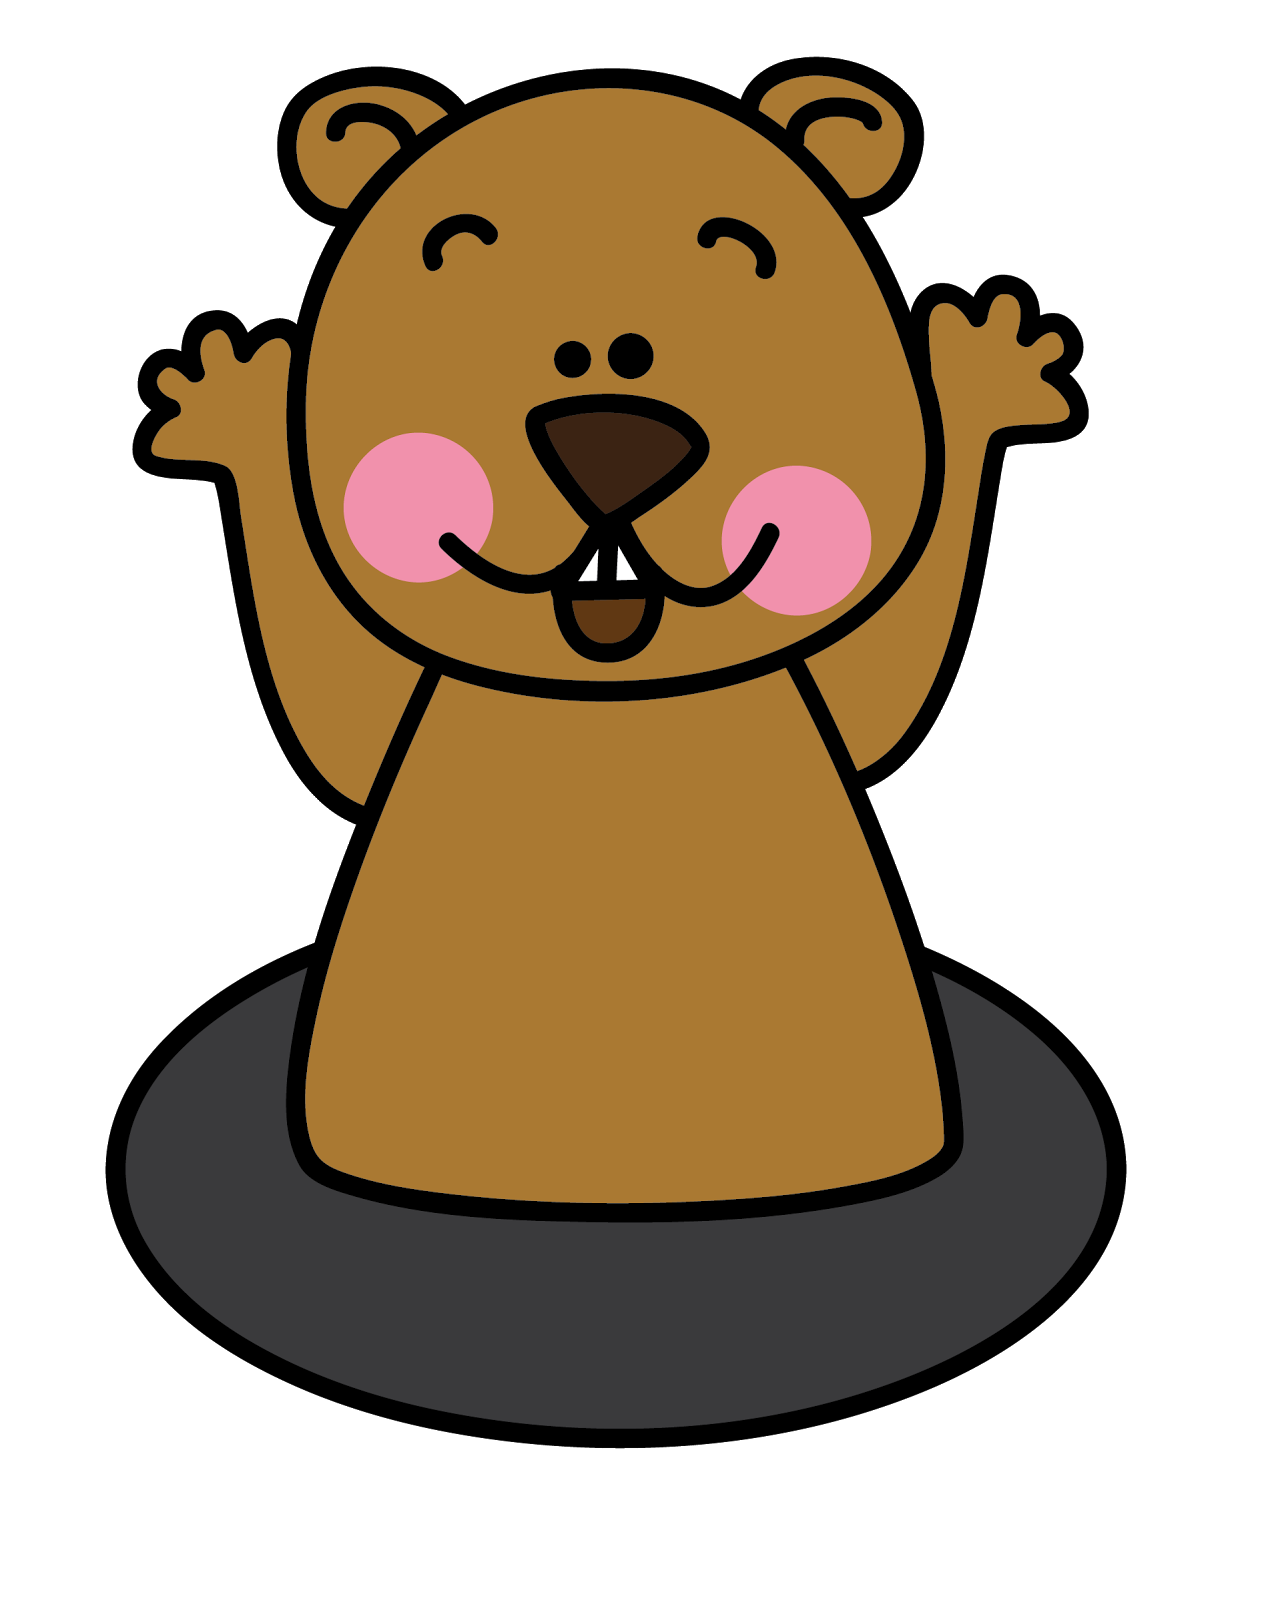 Free clipart groundhog day jpg freeuse library Free Groundhog Cliparts, Download Free Clip Art, Free Clip Art on ... jpg freeuse library